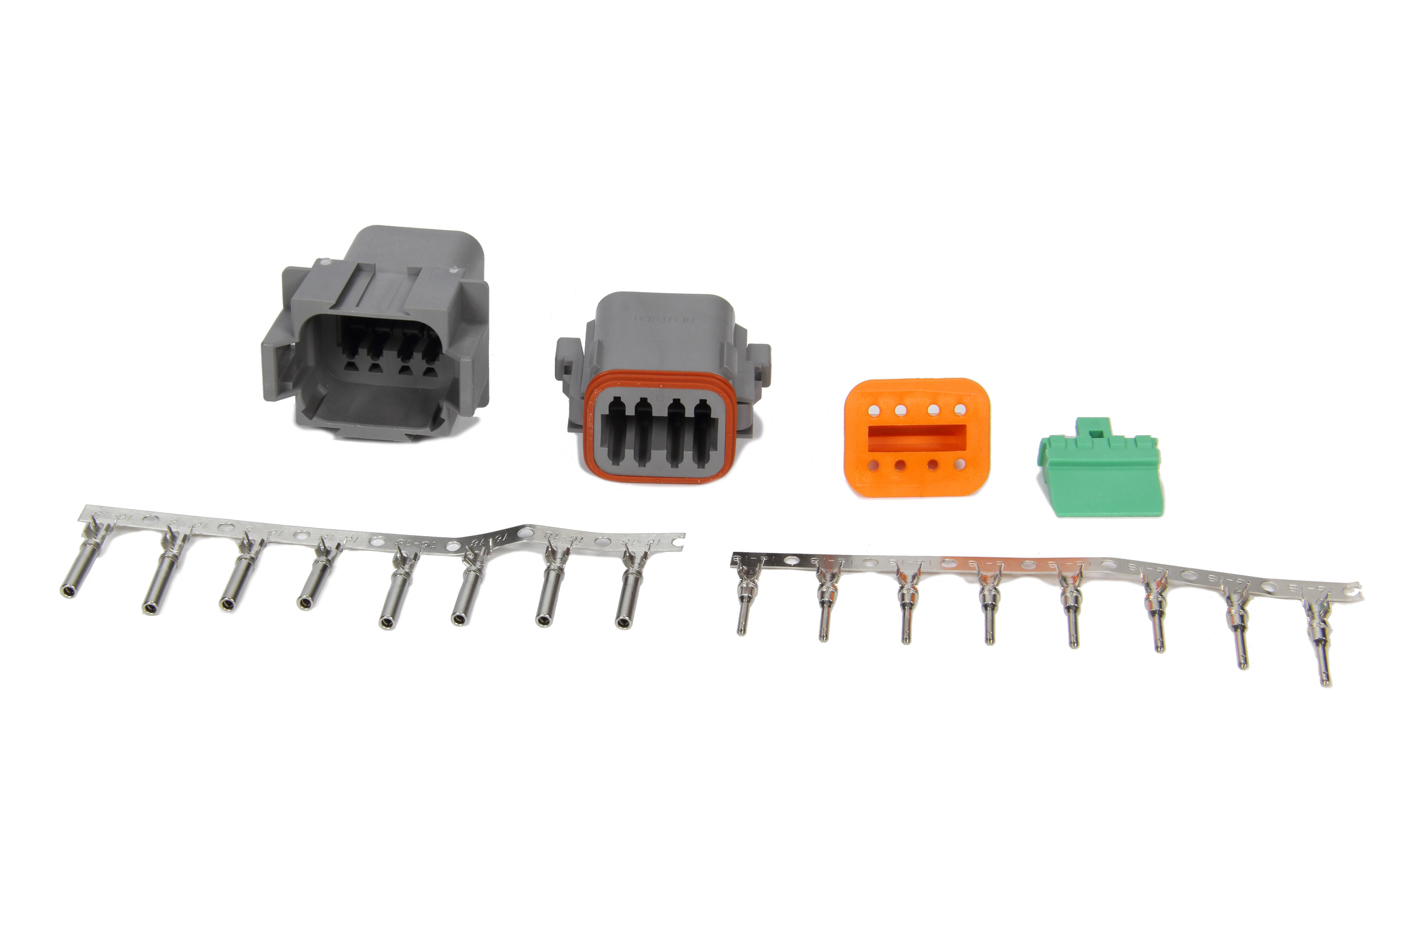 MSD Ignition 8185 Electrical Connector, Deutsch Connector, 8 Pin, 16 Gauge, Kit